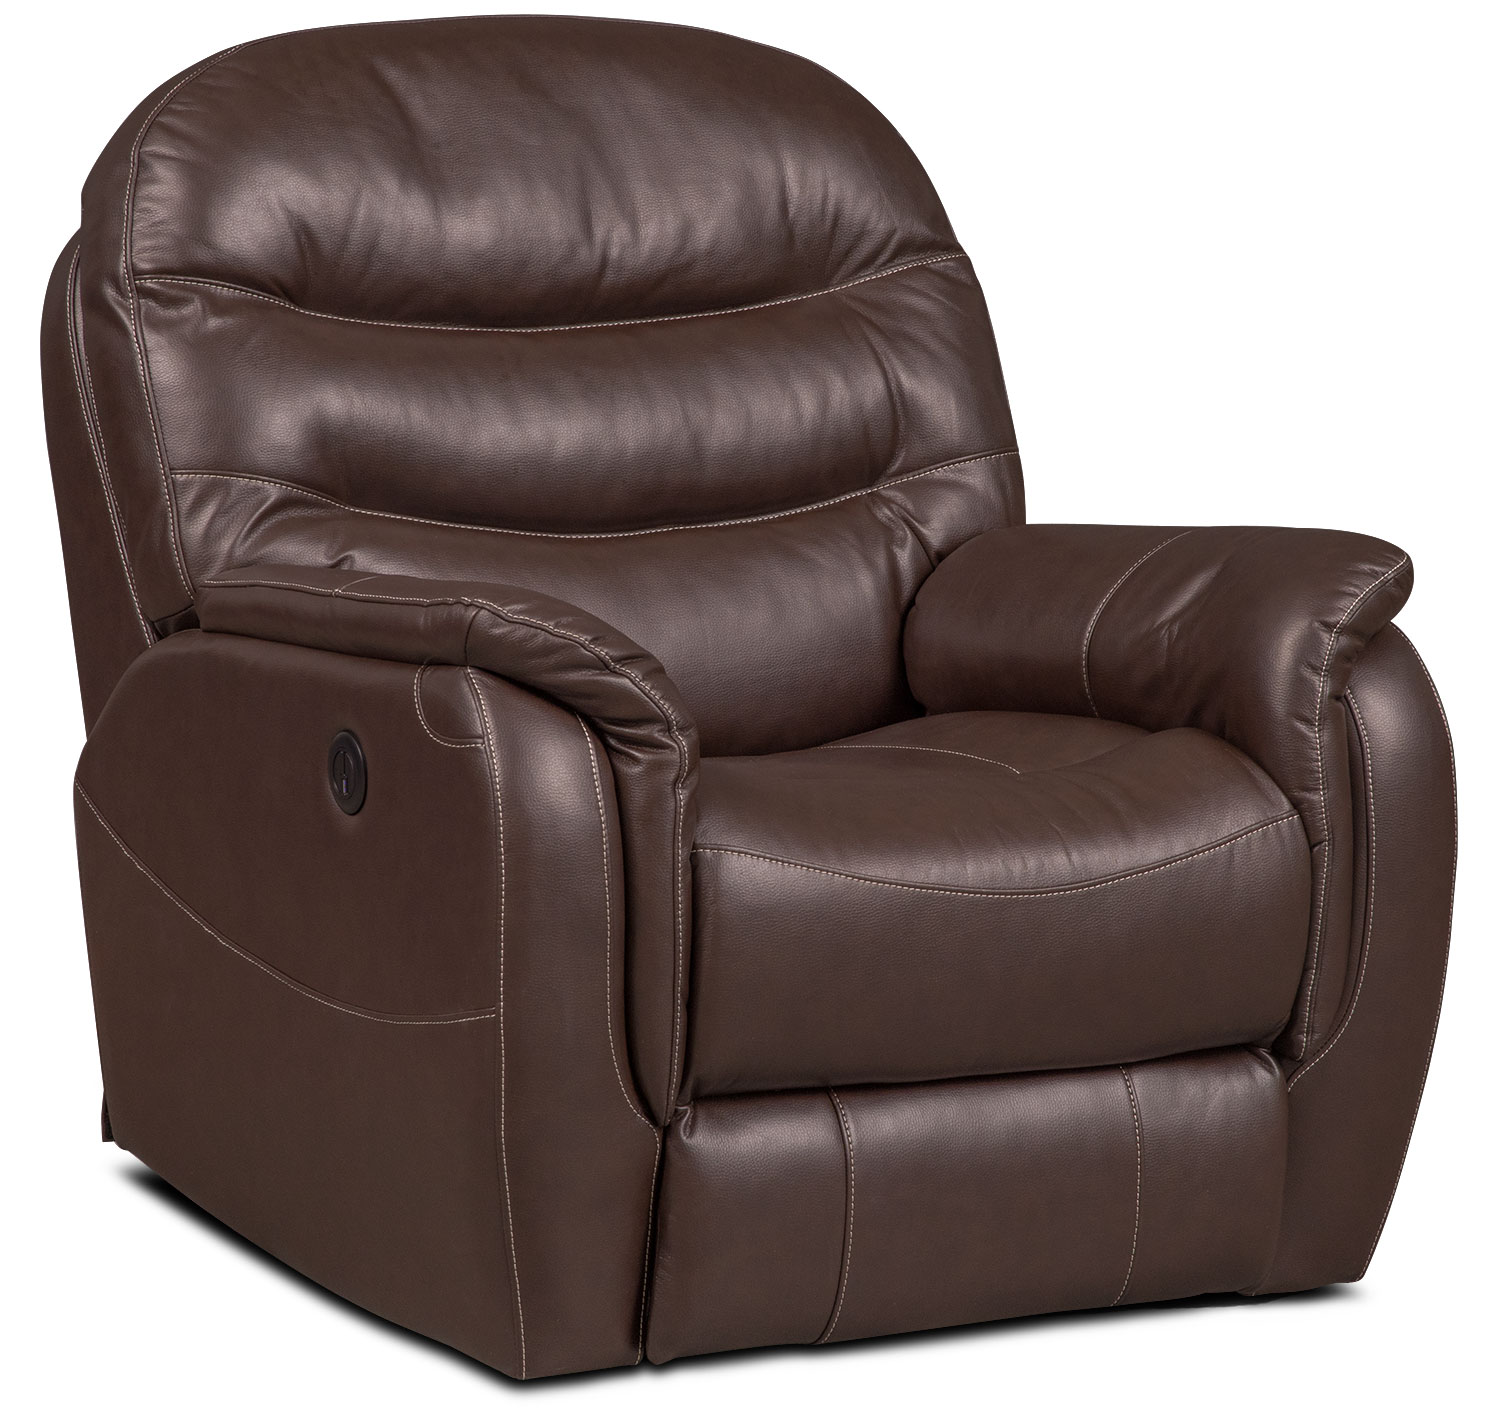 Living Room Furniture - Milo Power Recliner - Chocolate